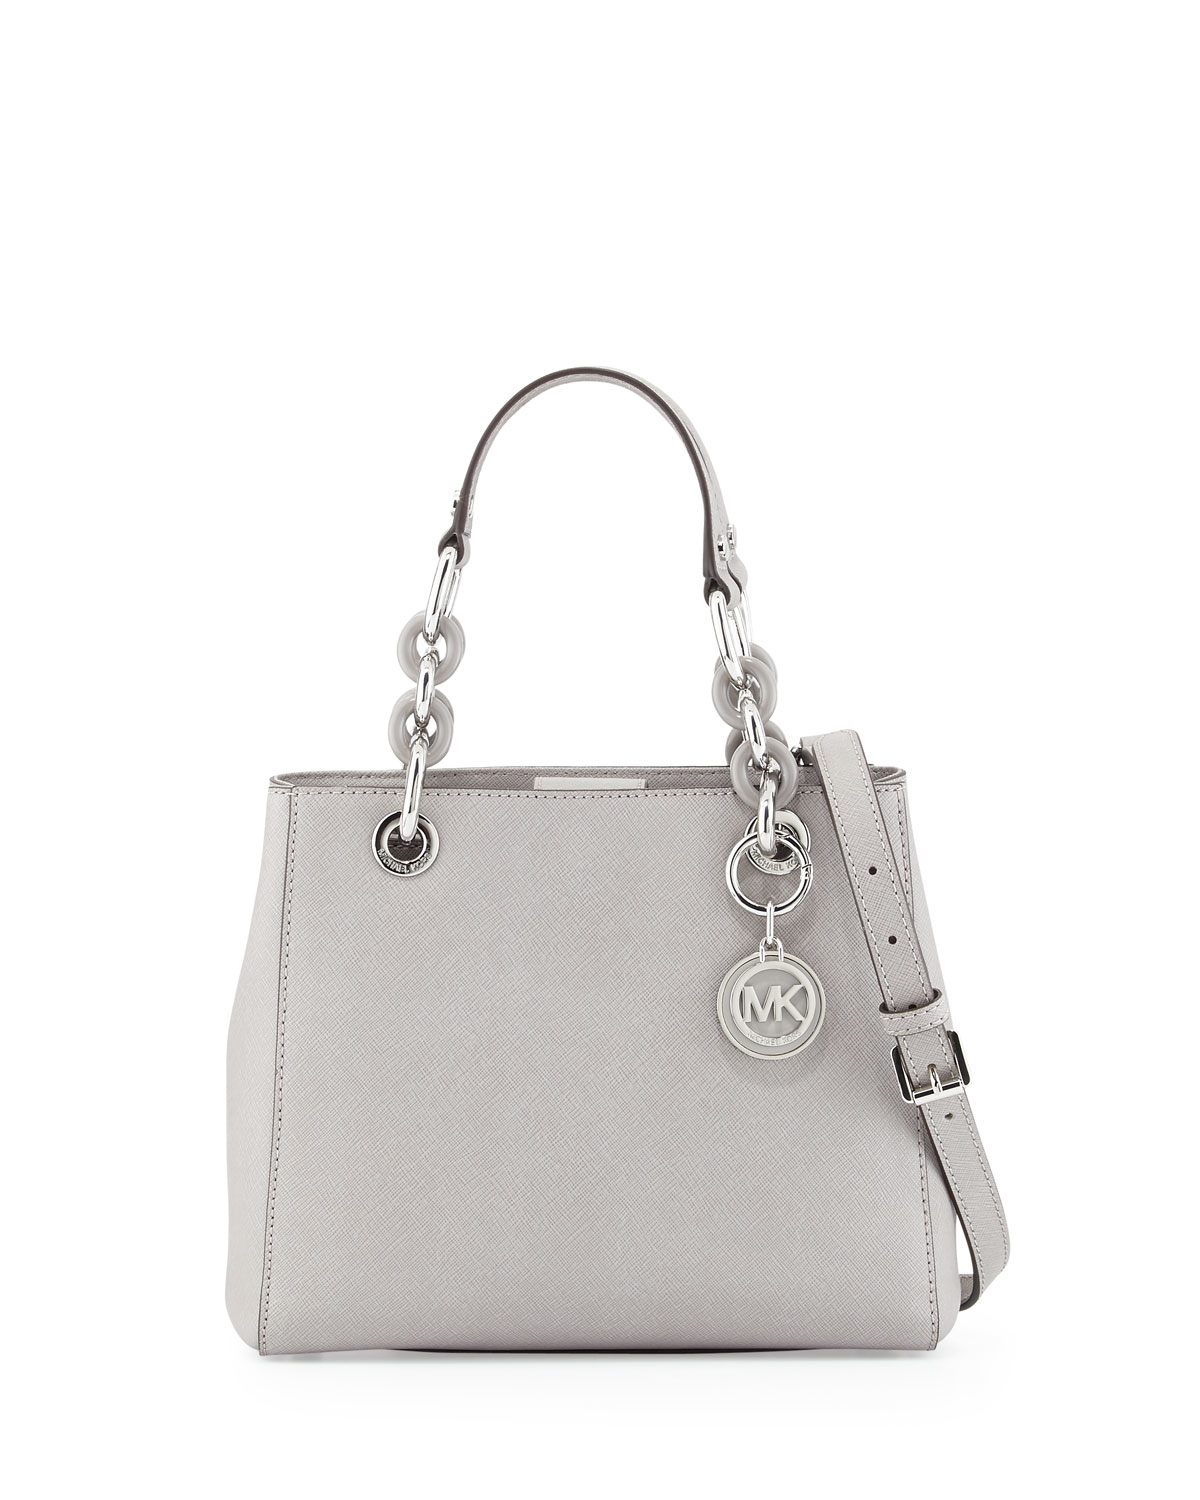 a5ce74b865a912 Gallery. Previously sold at: Neiman Marcus · Women's Michael By Michael  Kors Cynthia